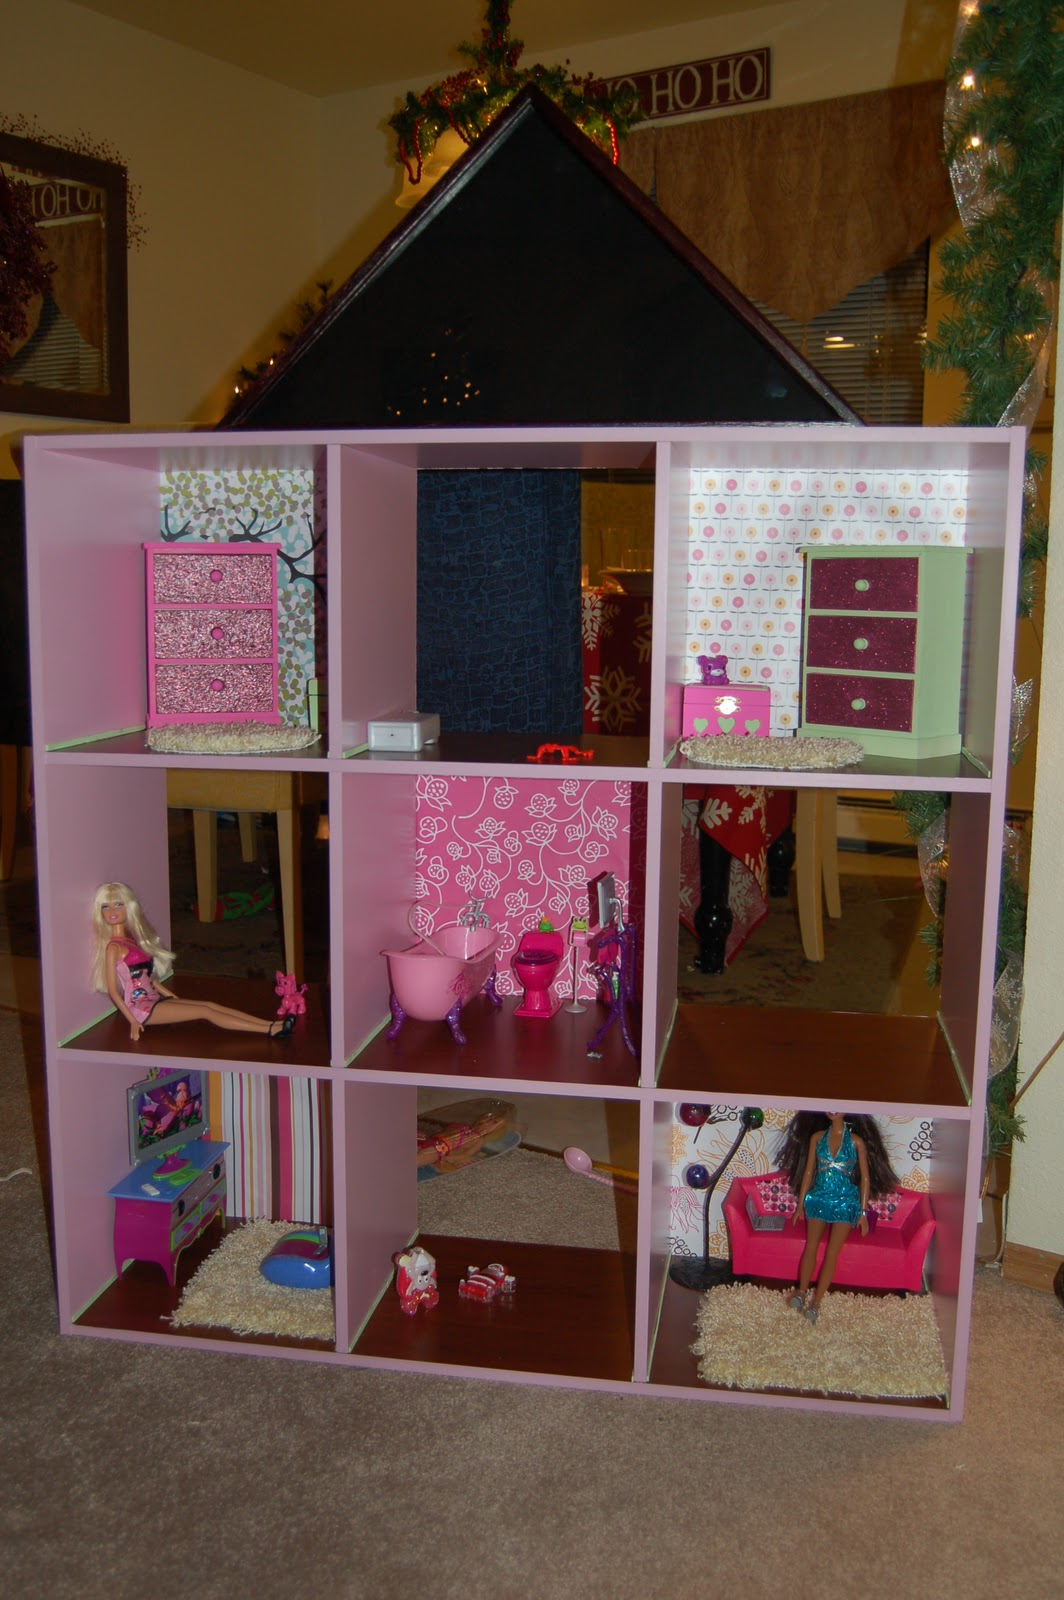 annette s notes How to make a Barbie dream house